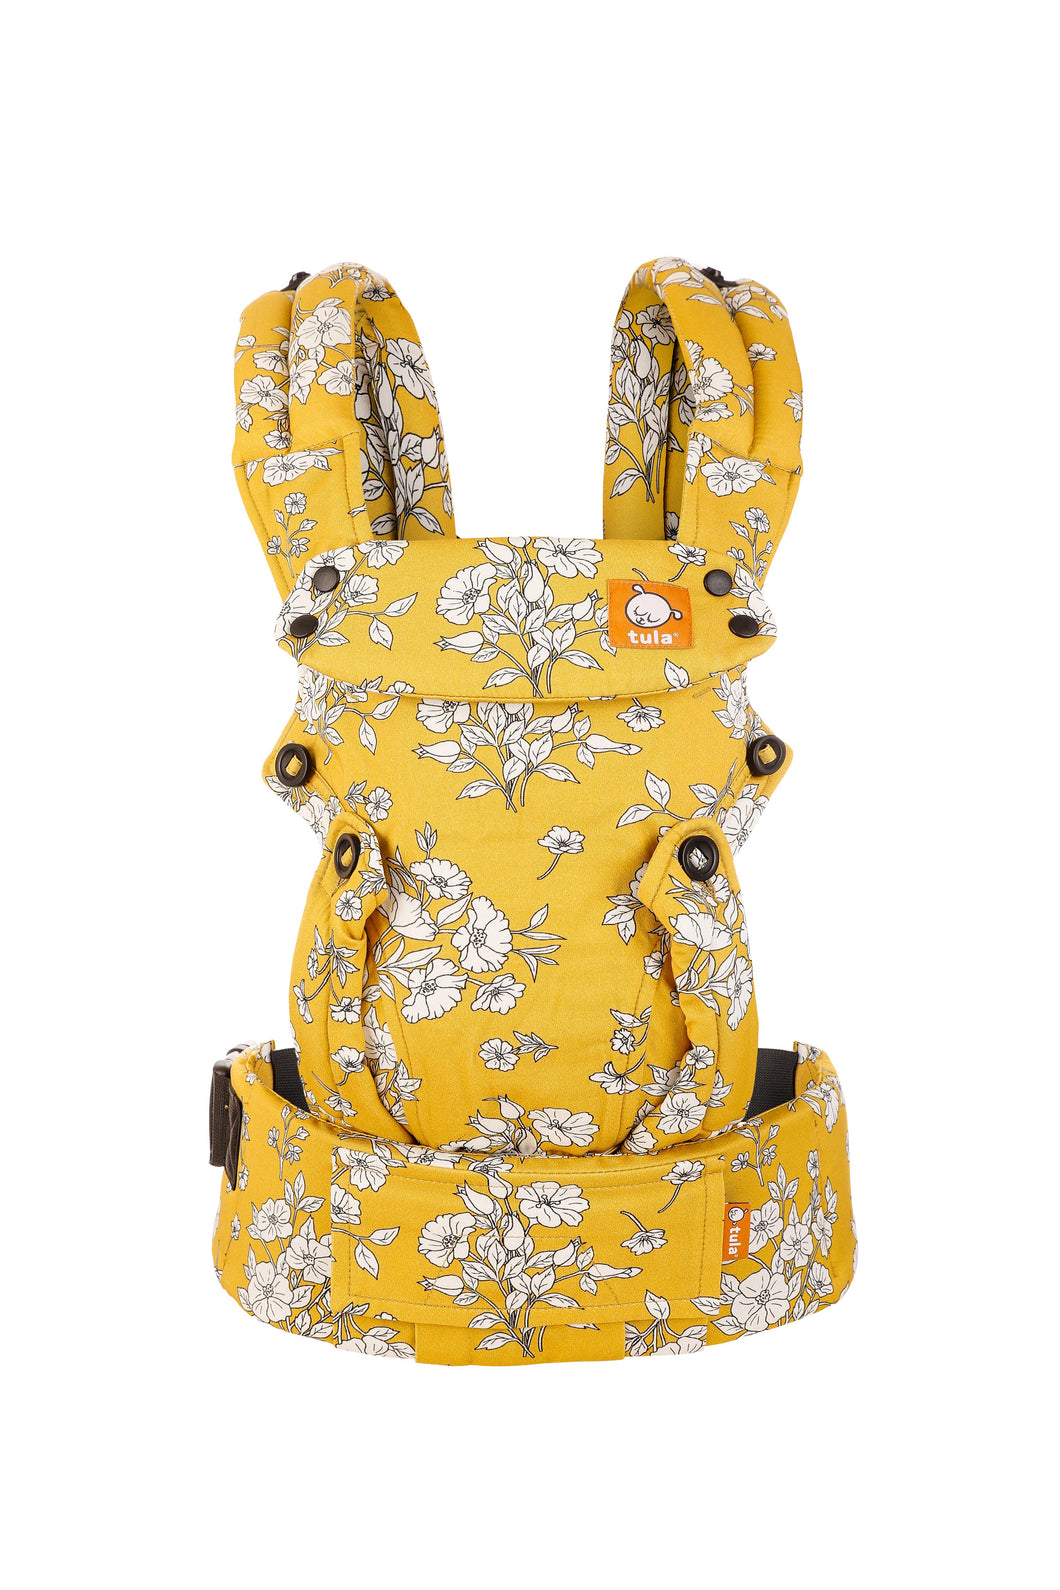 Blanche - Tula Explore Baby Carrier - Baby Tula UK